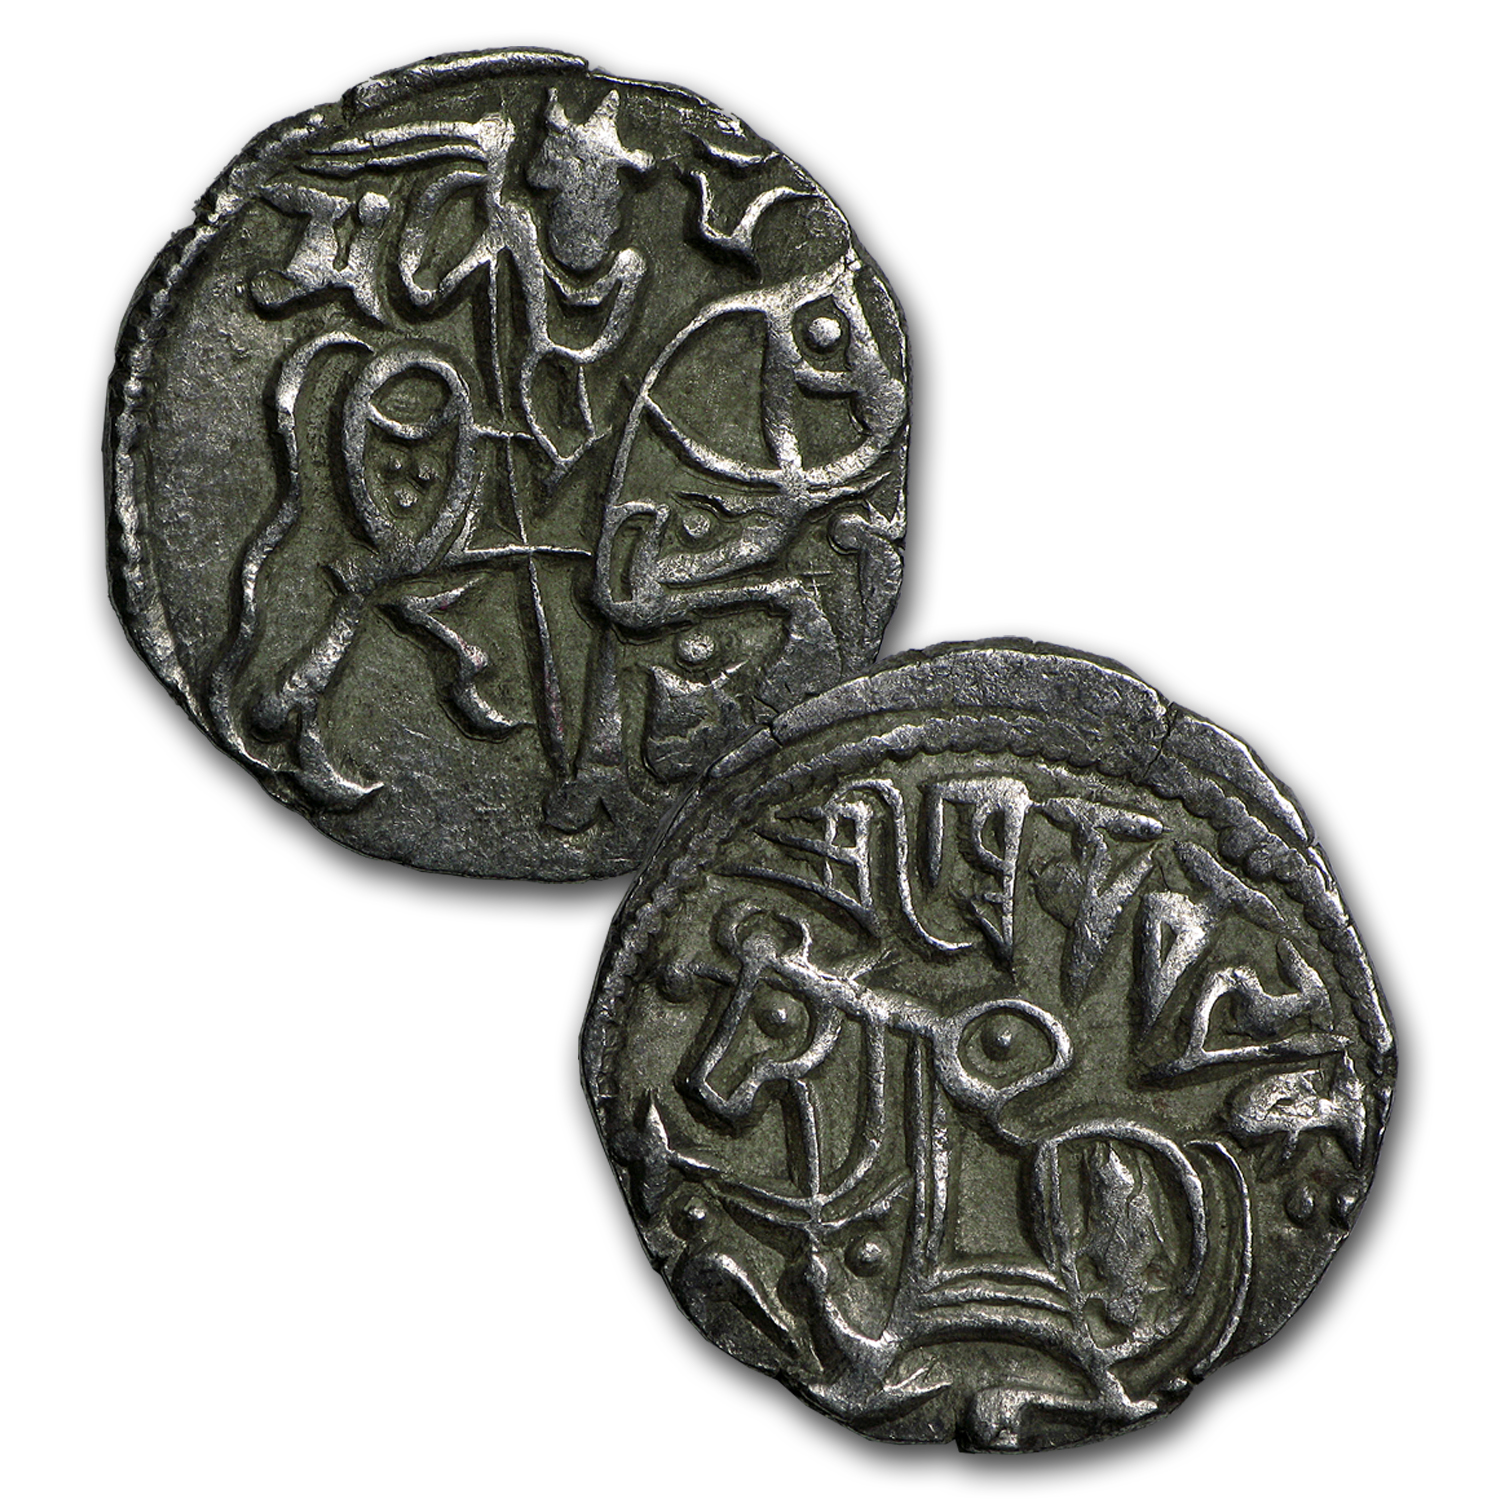 The Vikings Collection (4 coins)